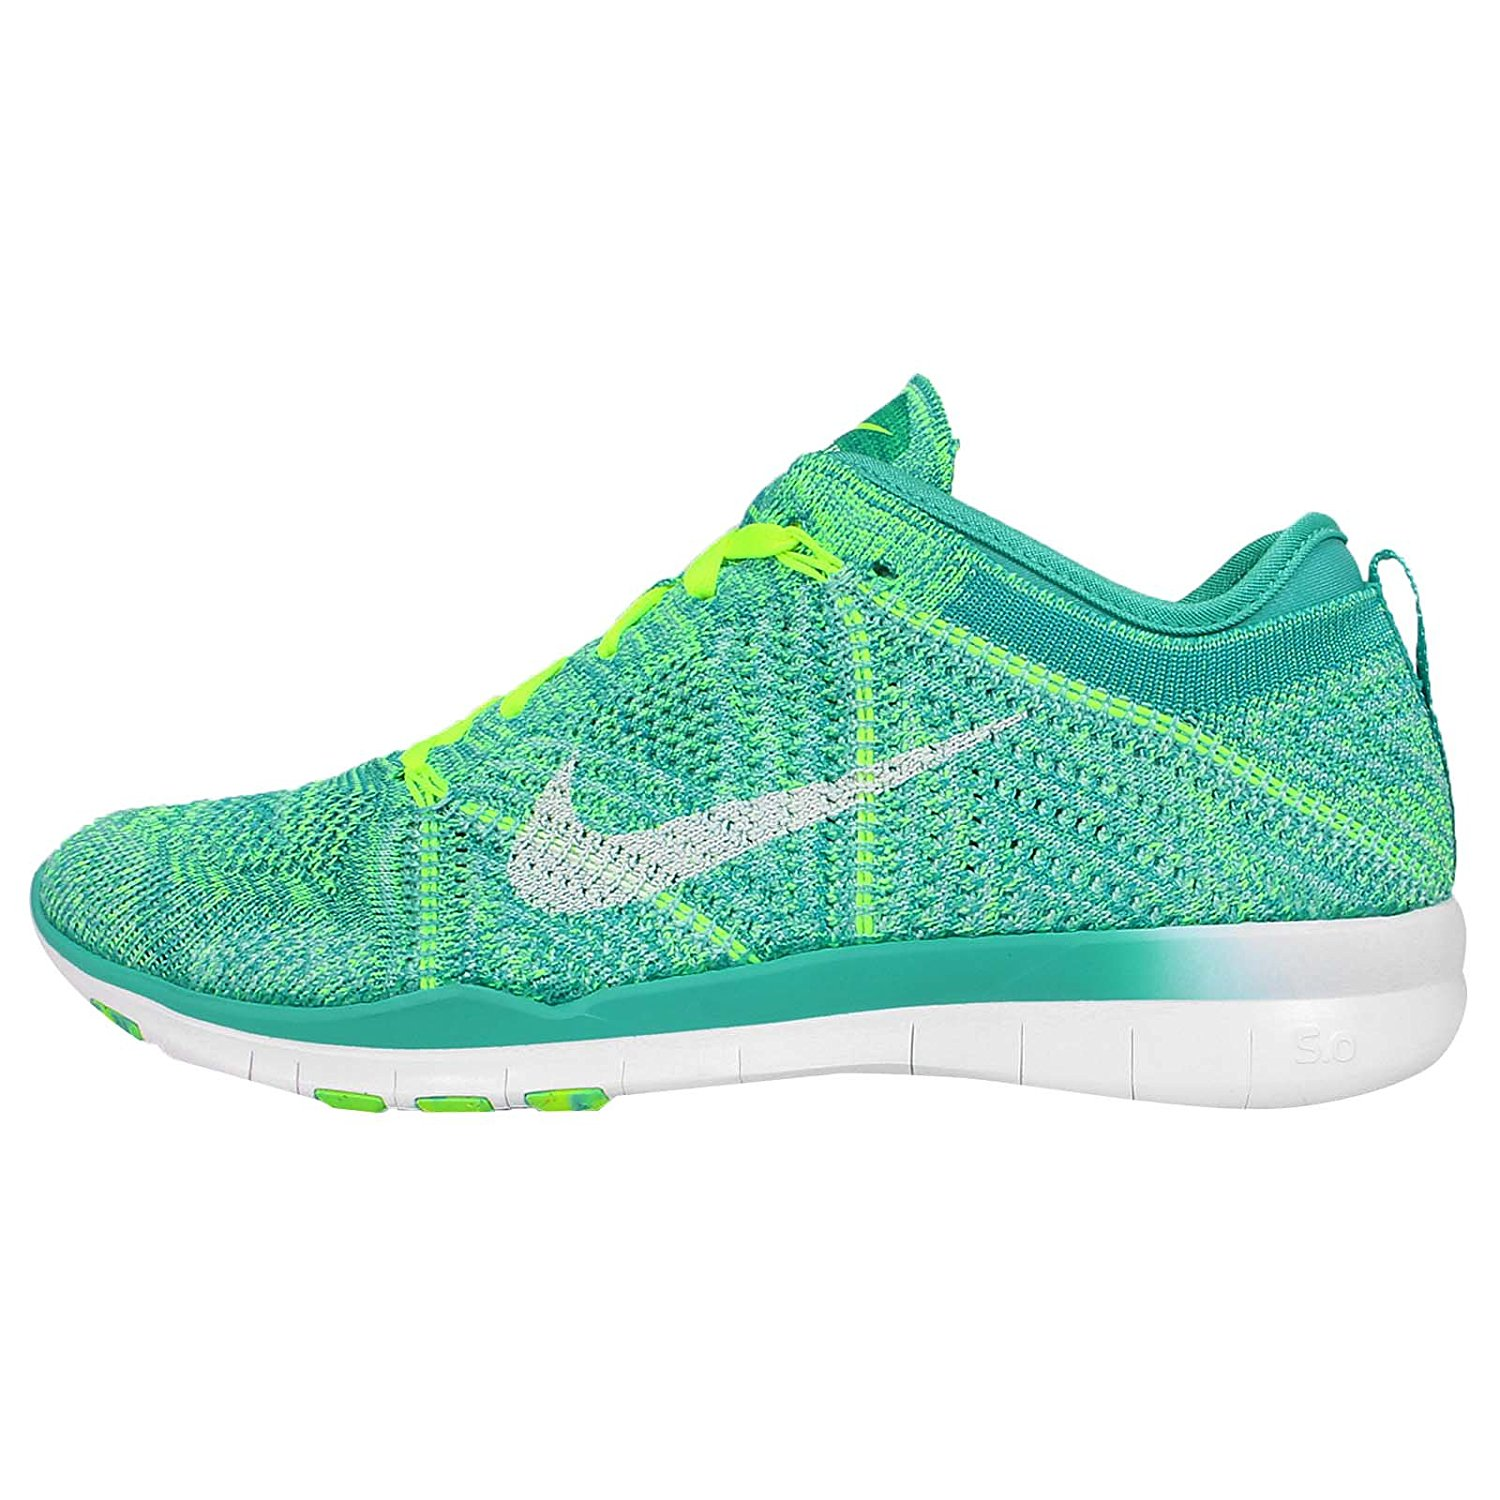 new concept cad05 7b443 Get Quotations · Nike Women s Free TR Flyknit Running Shoes (Prpl Blk-fchs  Glw-lght